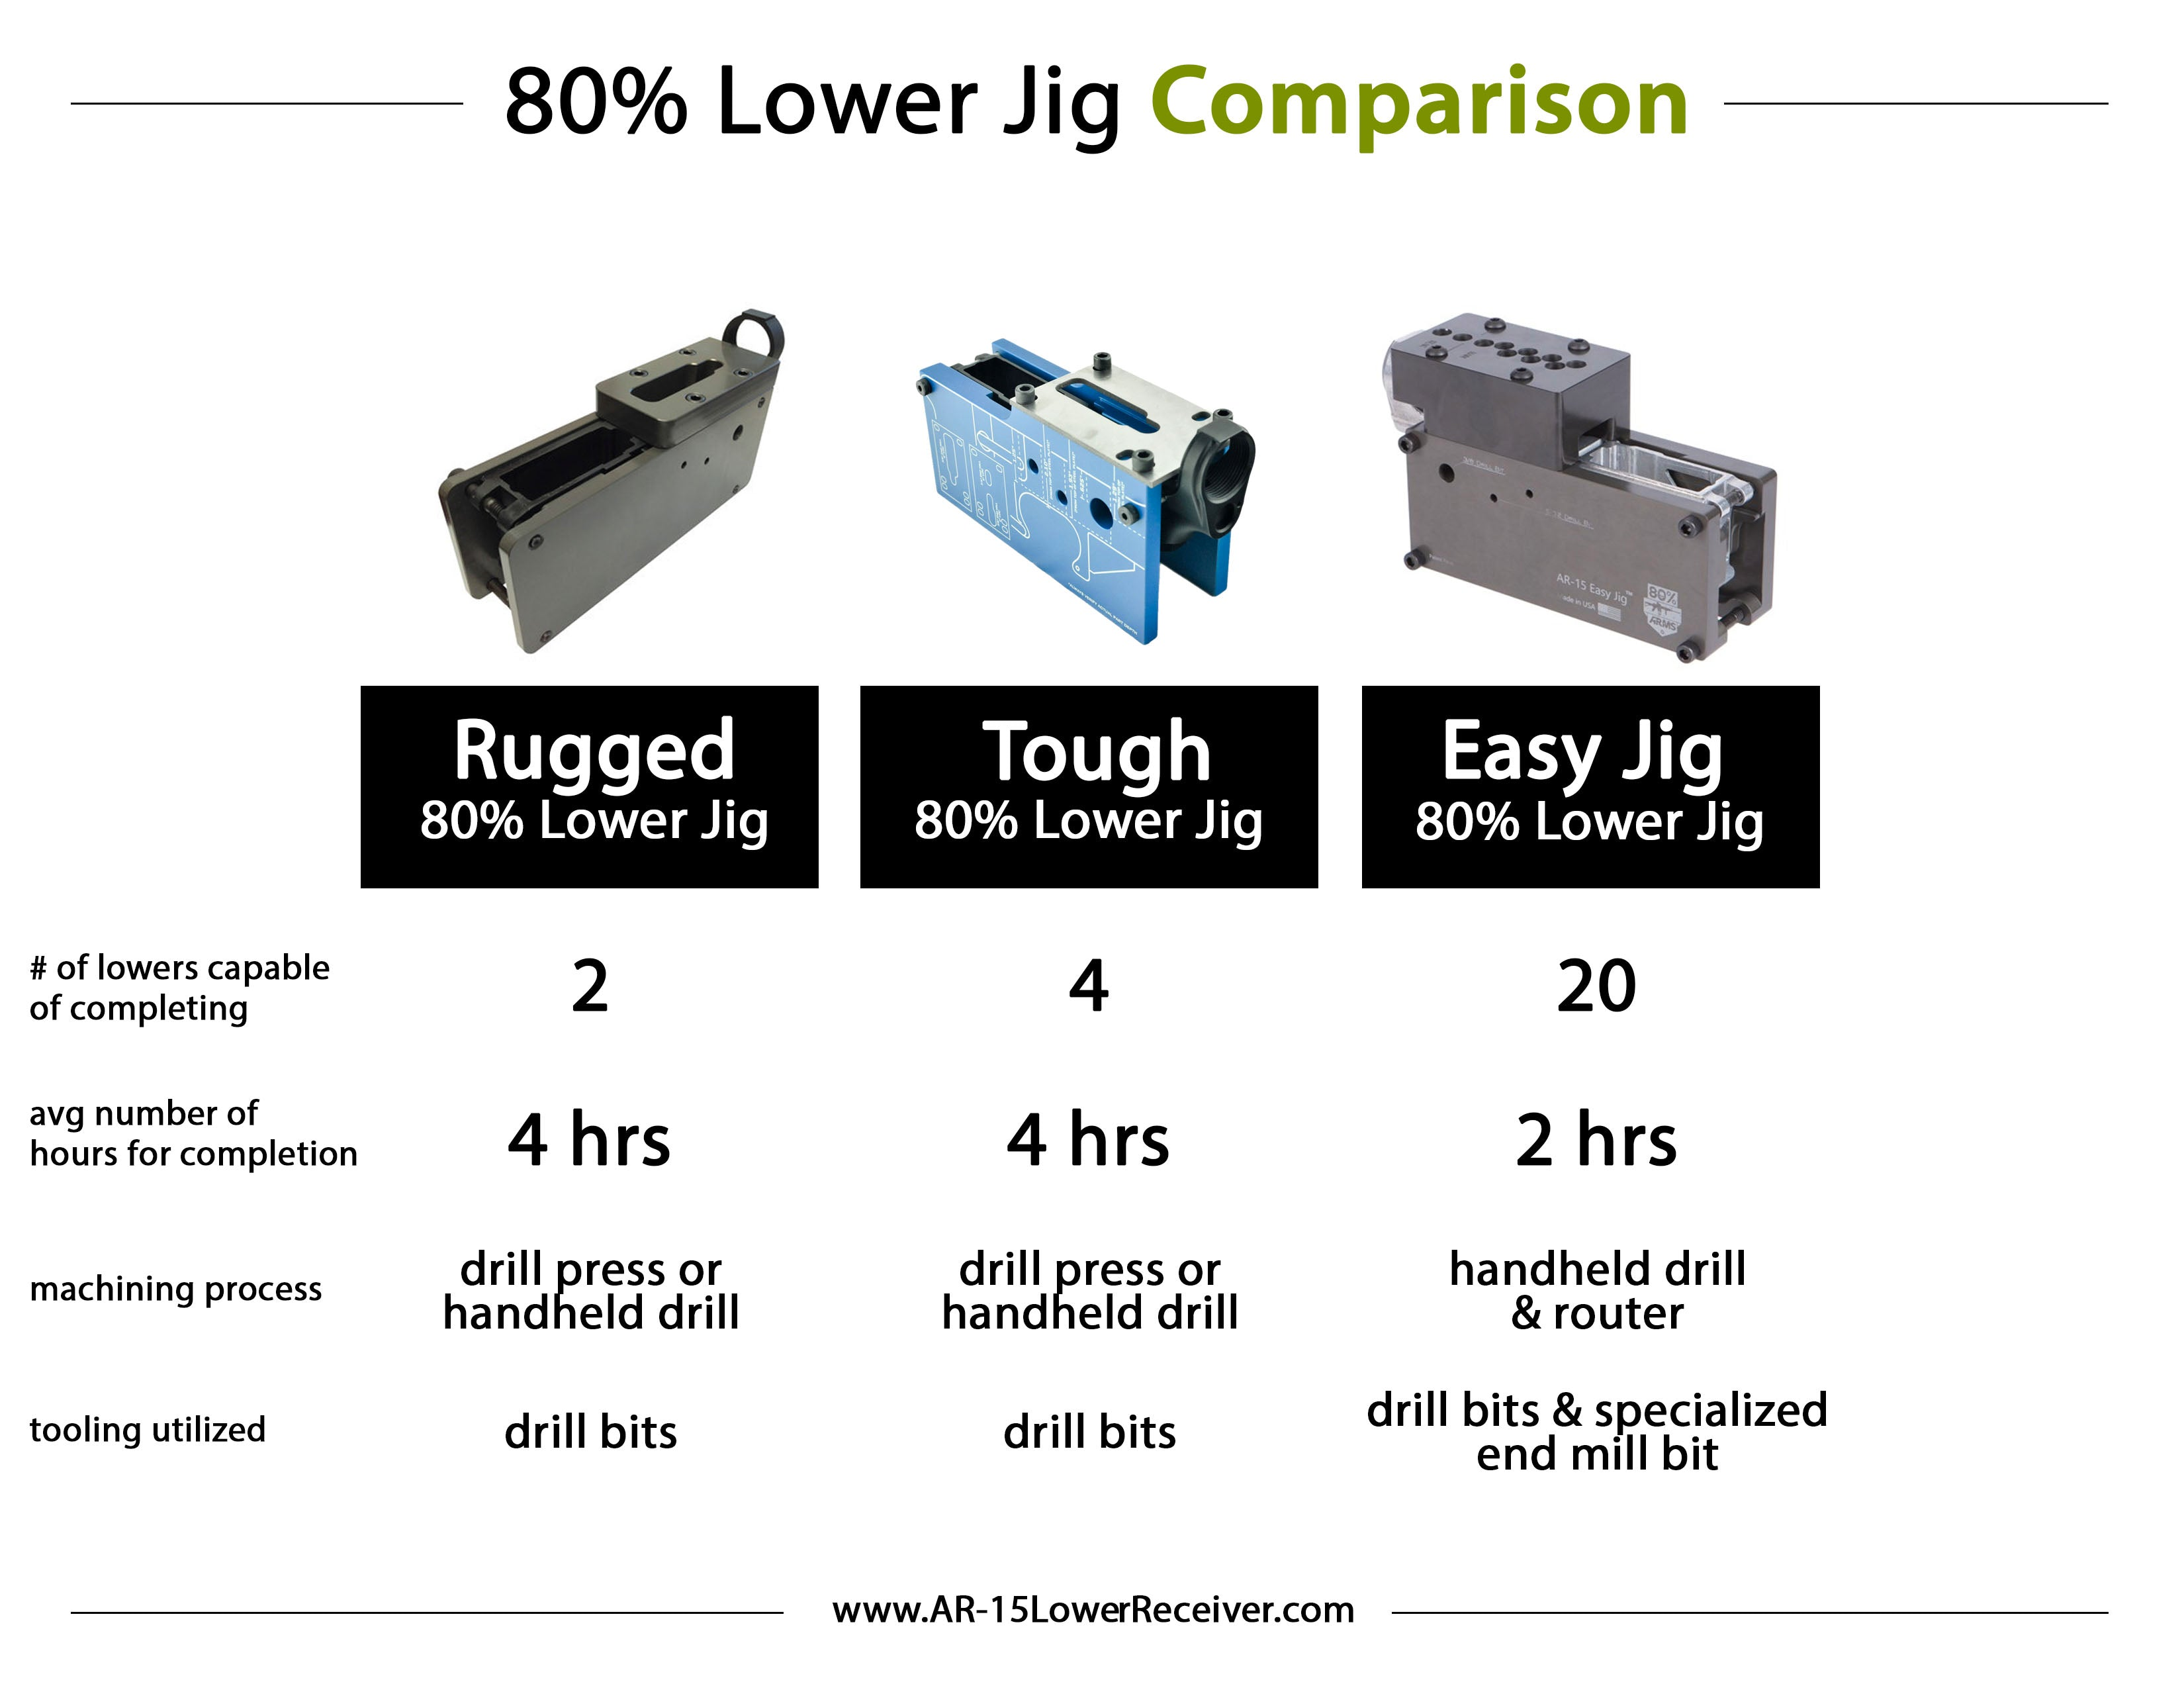 Compare Our 80% Lower Jigs